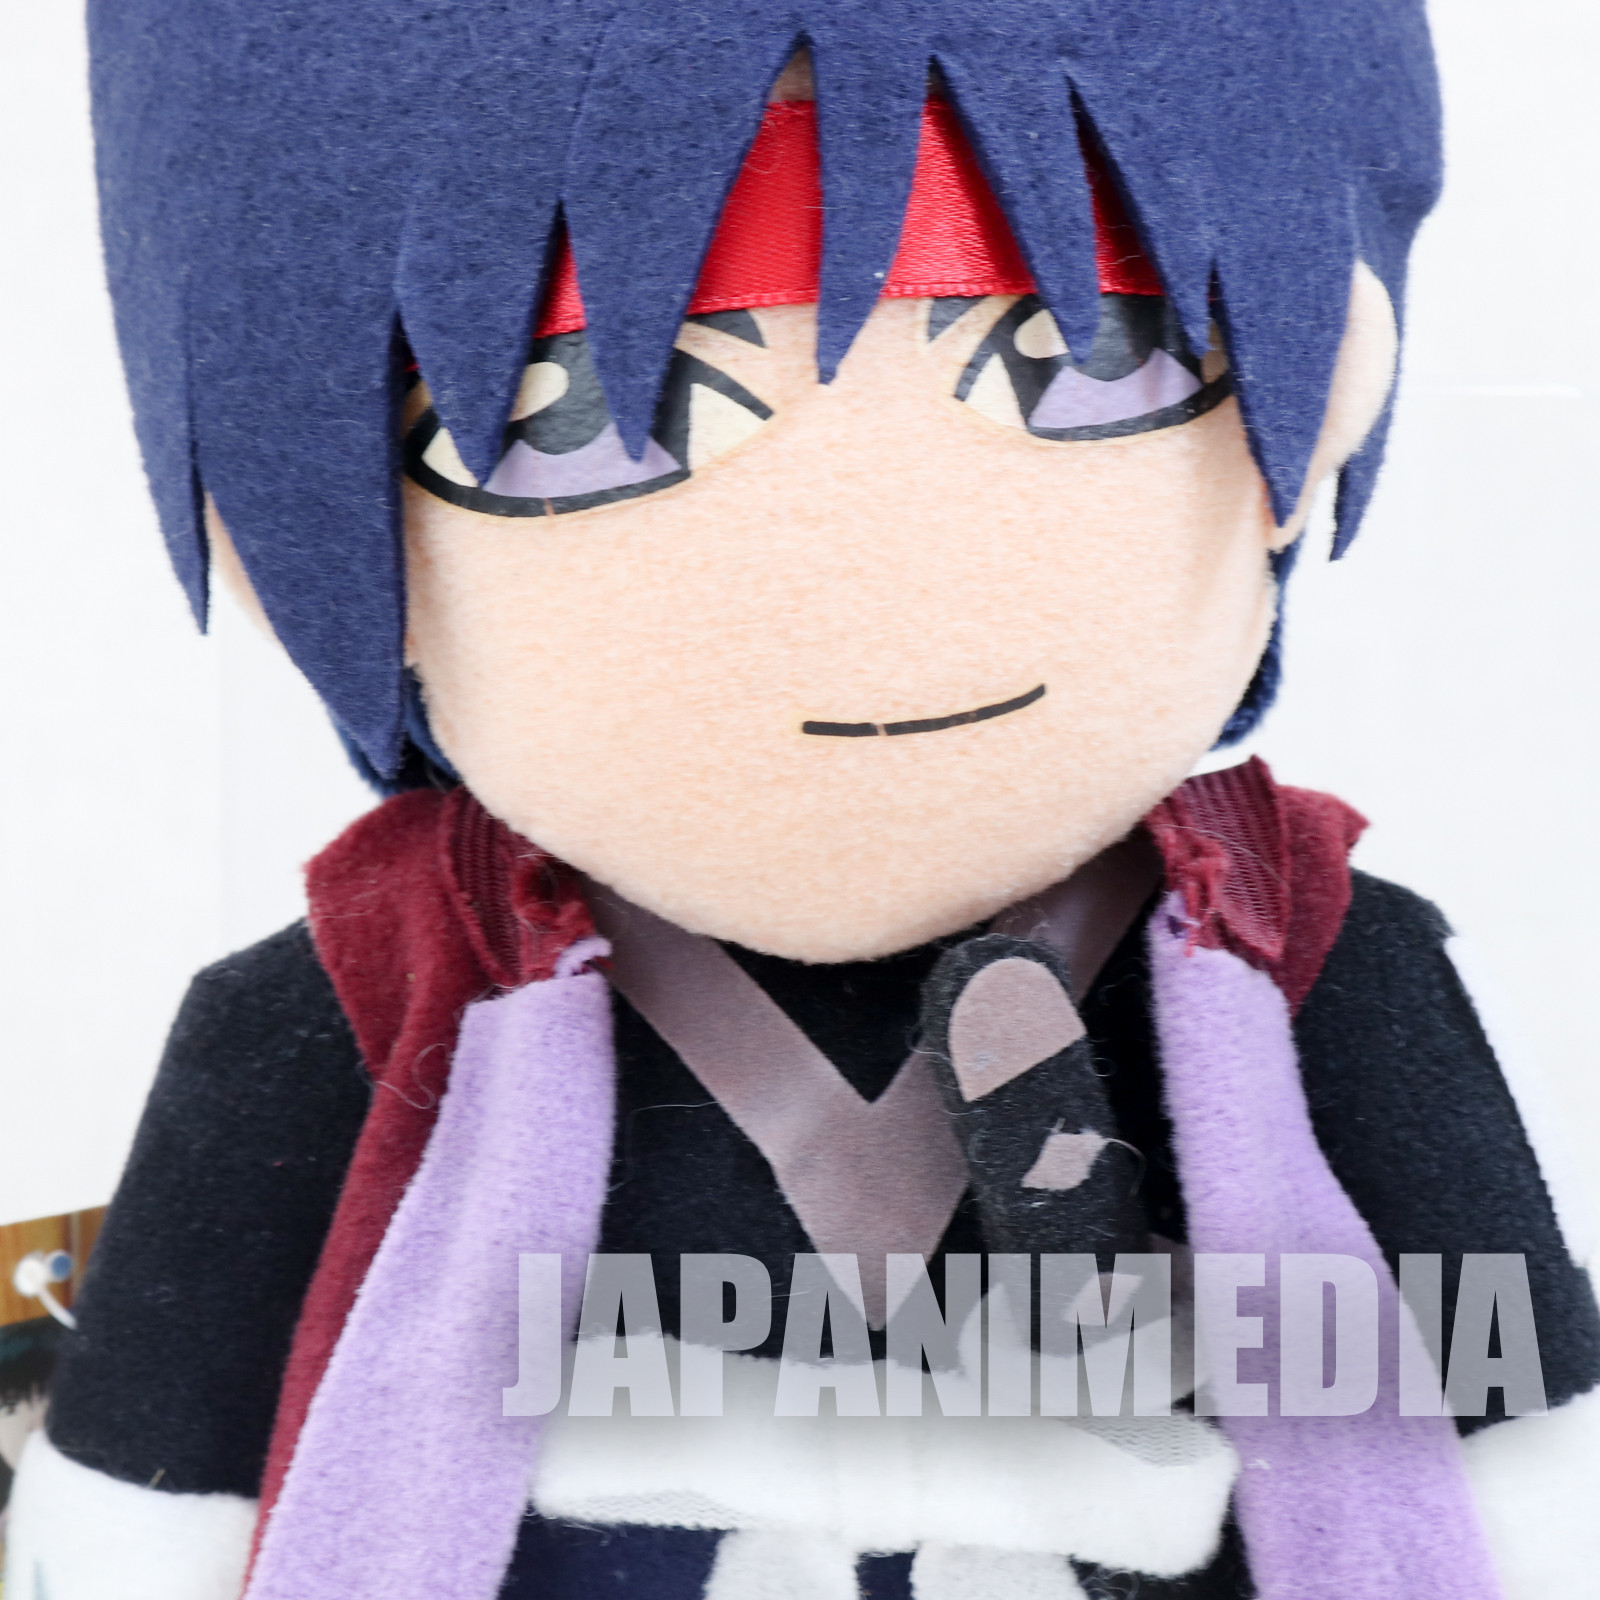 Rurouni Kenshin Sozo Sagara Plush Doll JAPAN ANIME